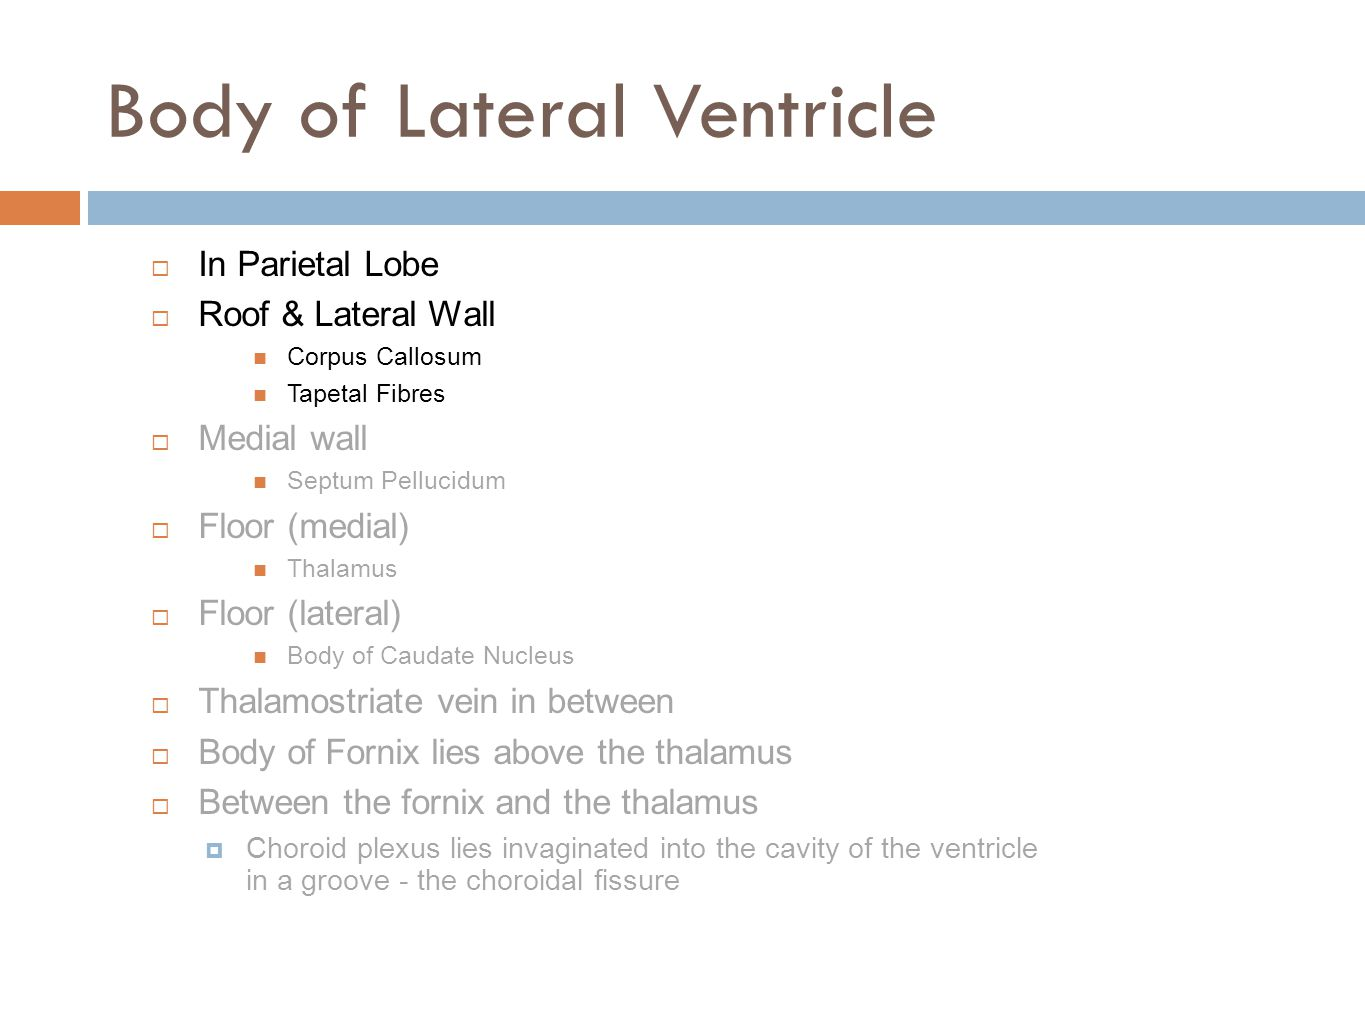 Body of Lateral Ventricle